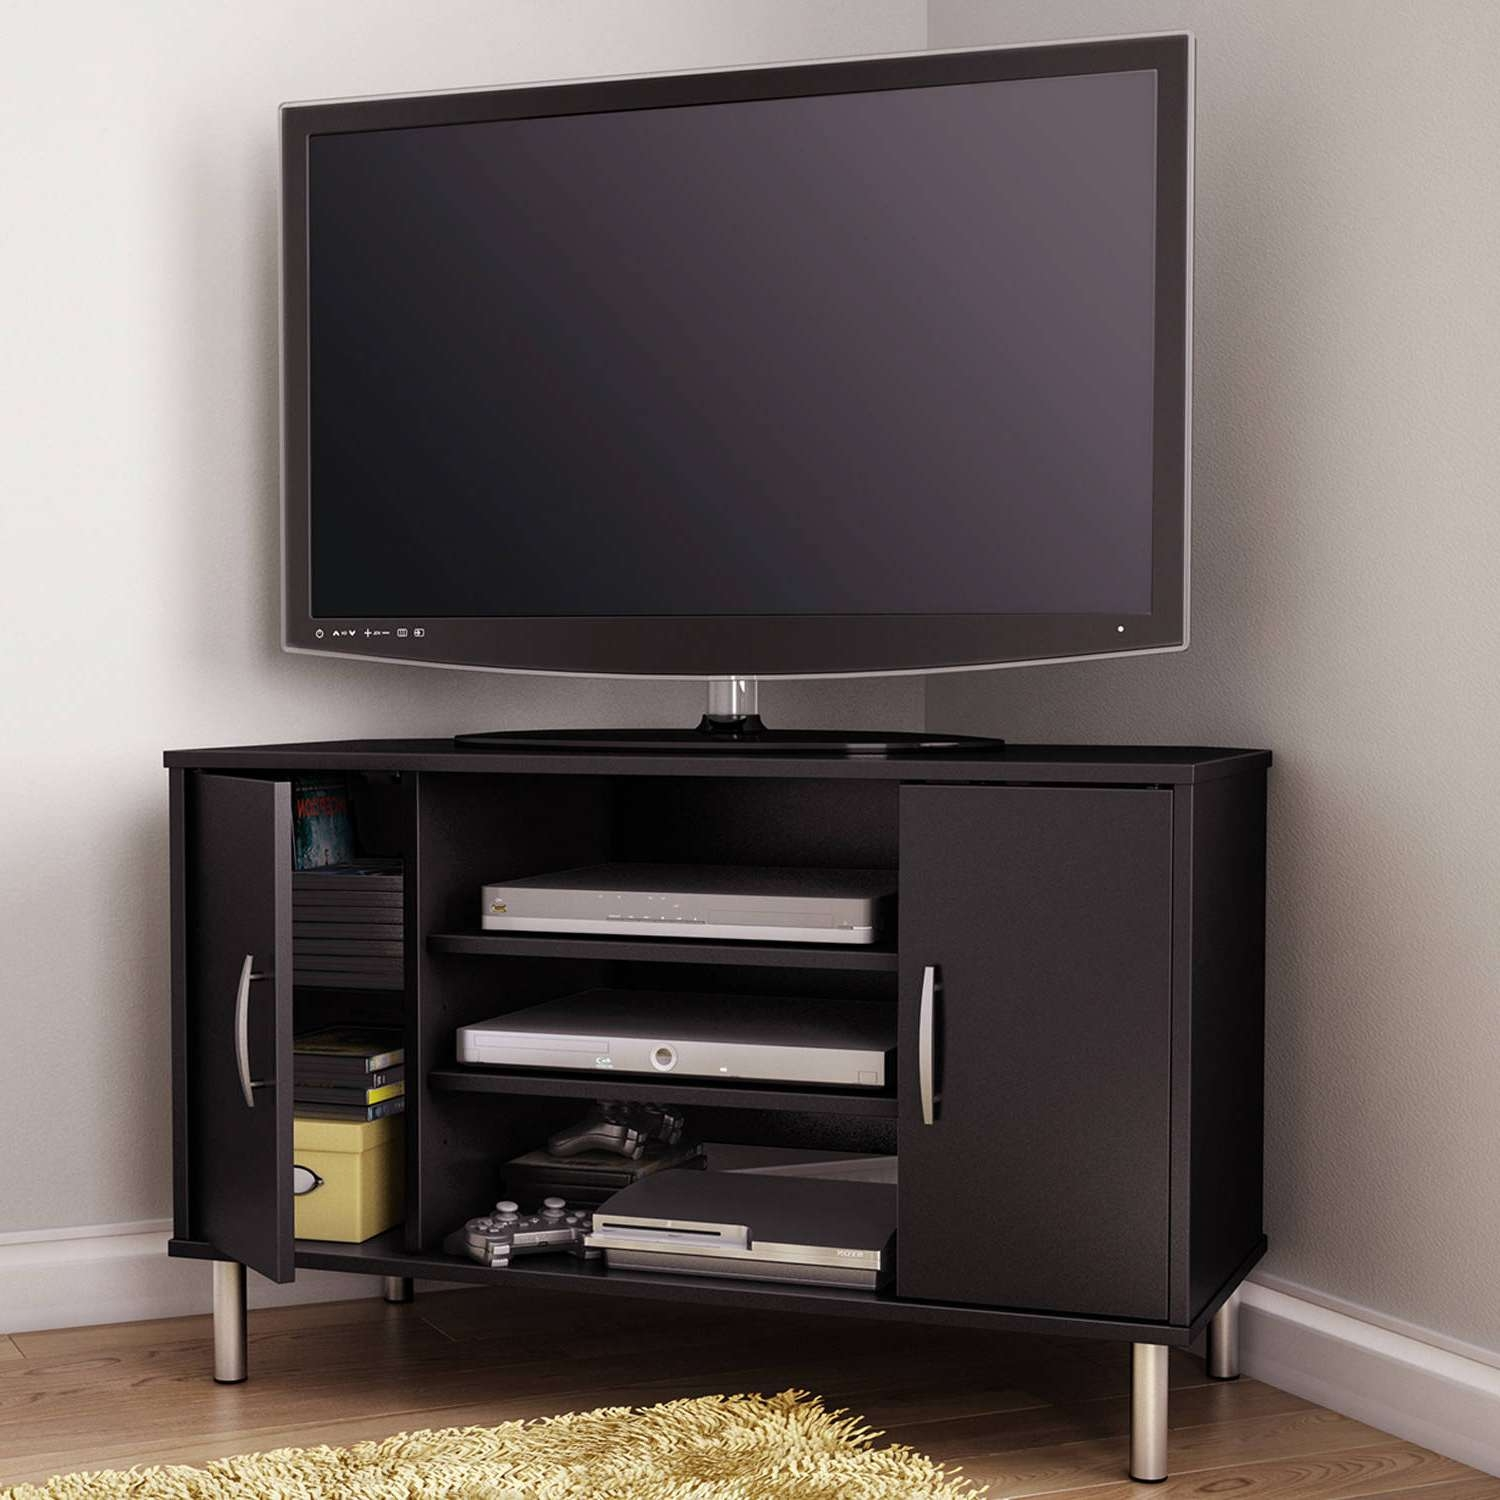 Corner Tv Stand Ikea – Corner Tv Stand Design With Various Cabinet Intended For Black Corner Tv Cabinets (View 4 of 20)